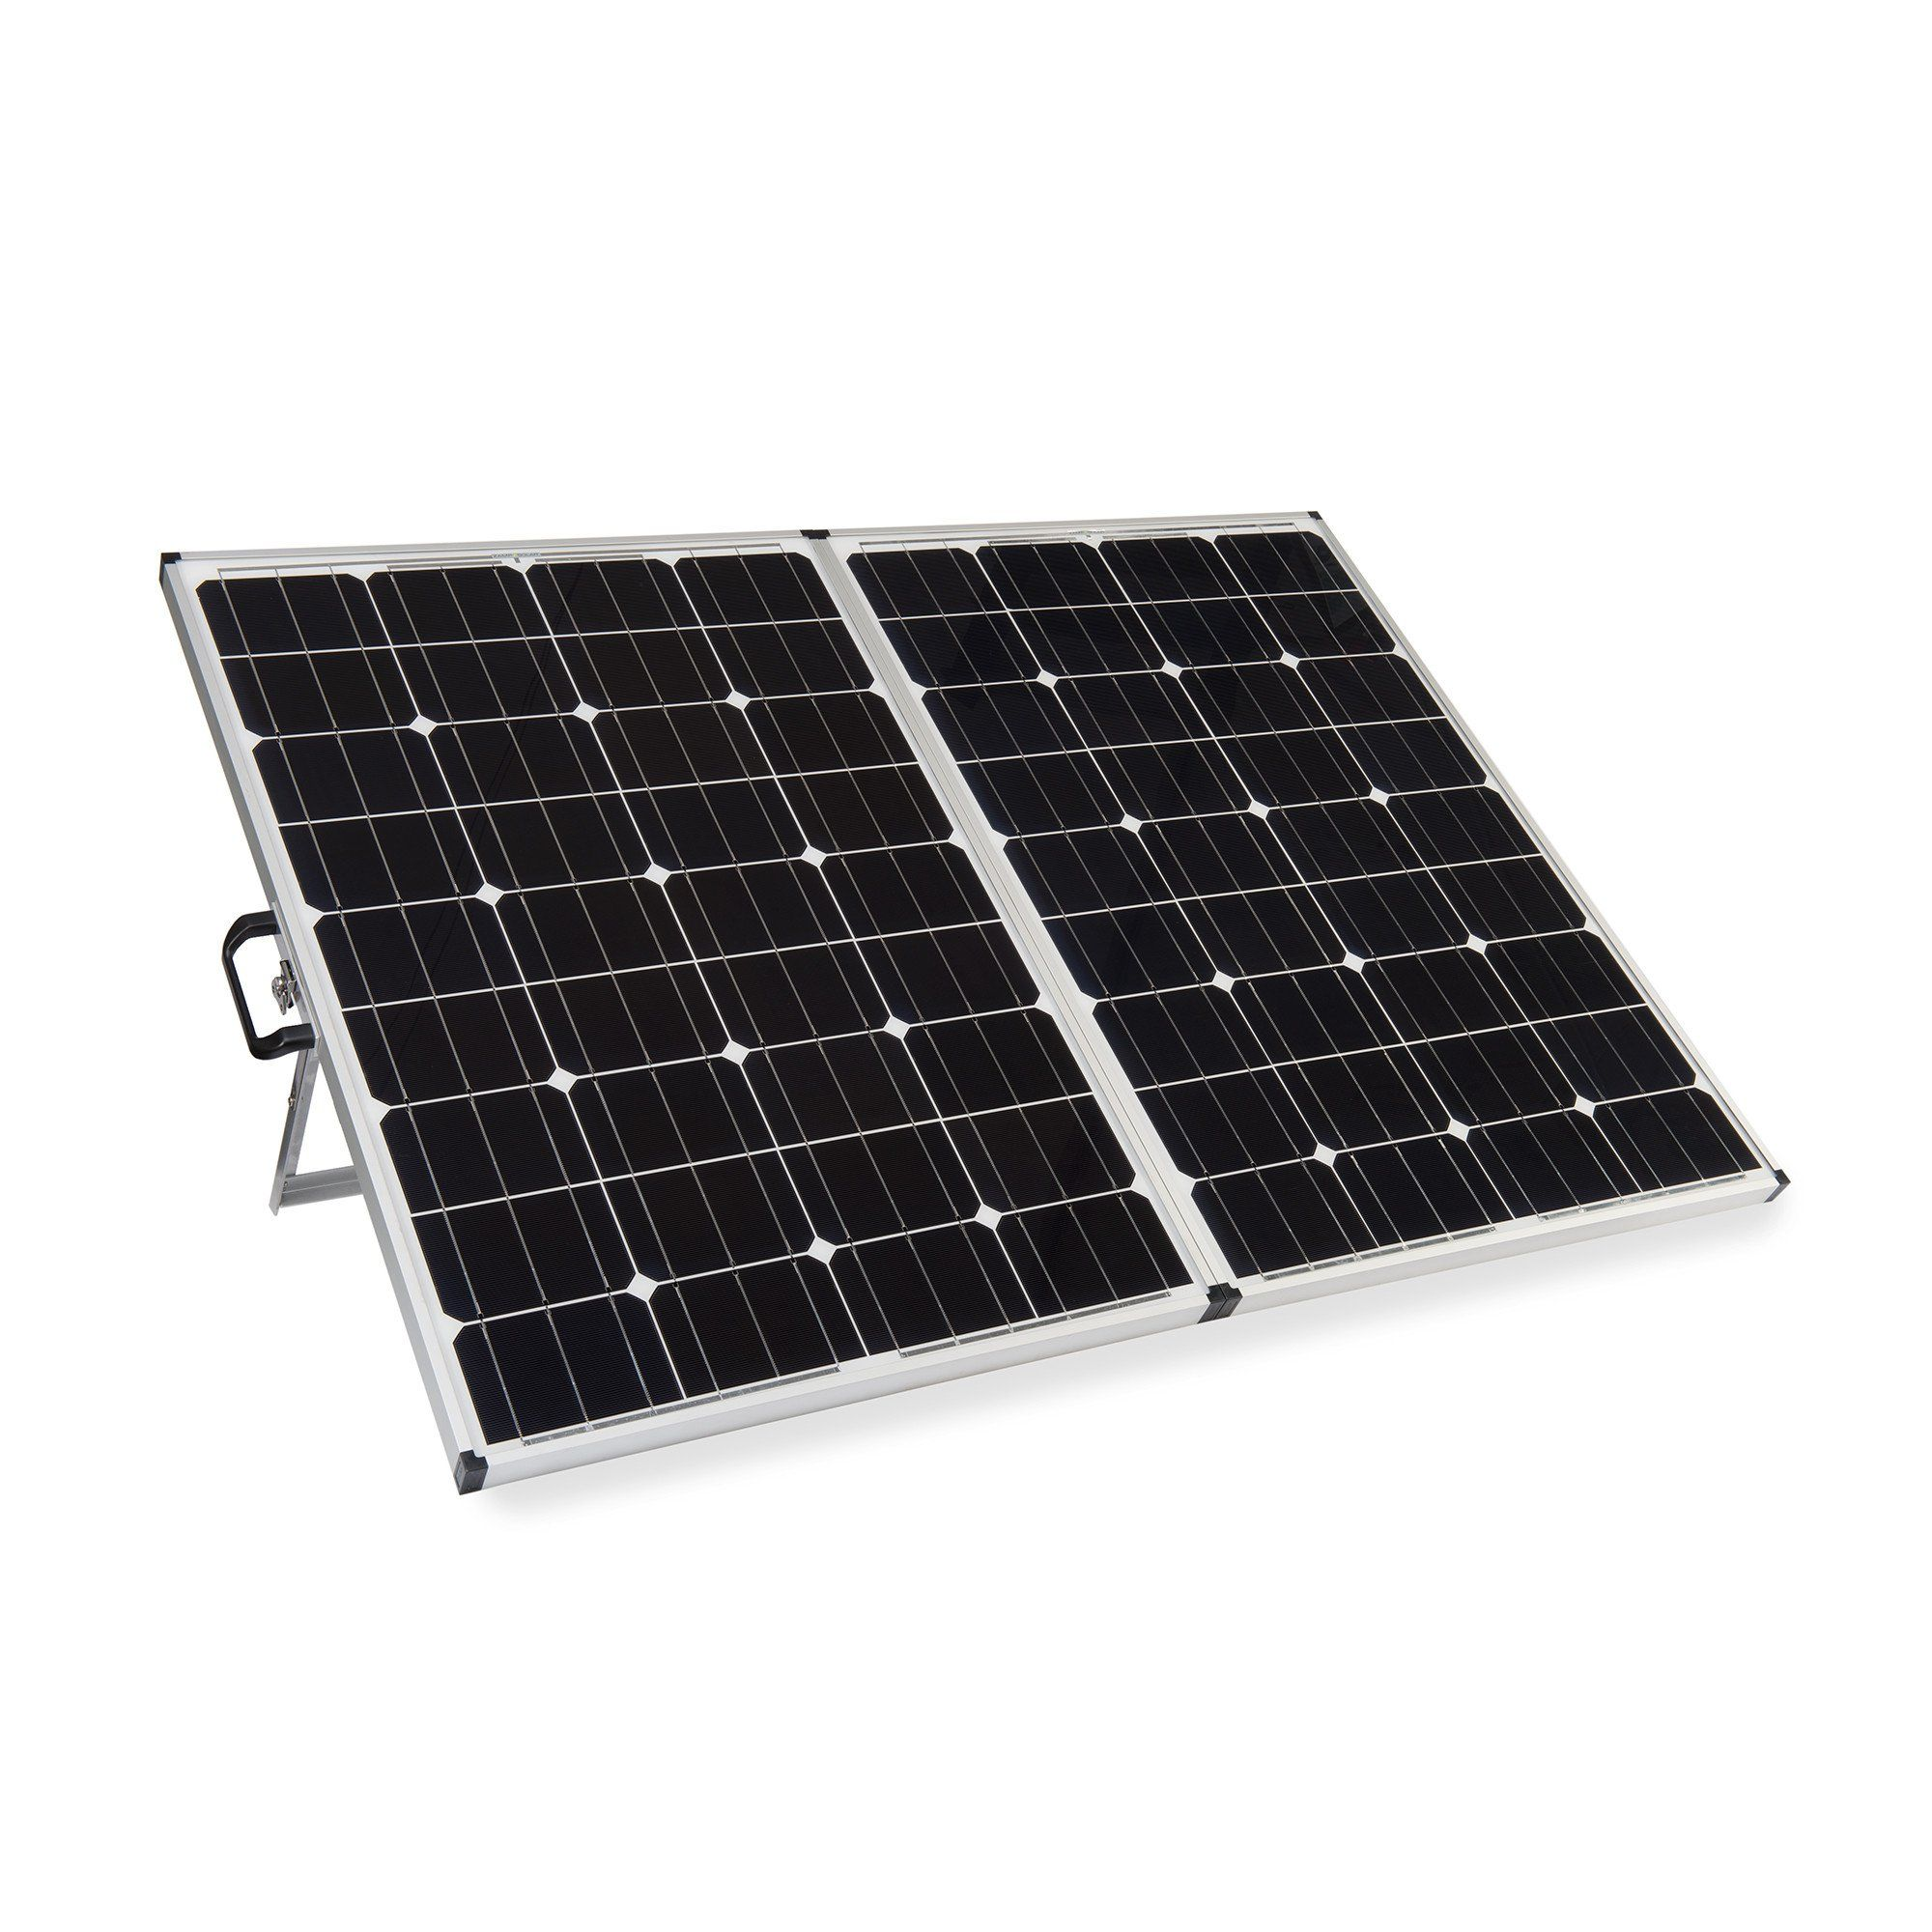 Save 10 On All Zamp Solar Panels This Weekend Enter The Code Laborday18 At Checkout Solar Panels Portable Solar Panels Best Solar Panels